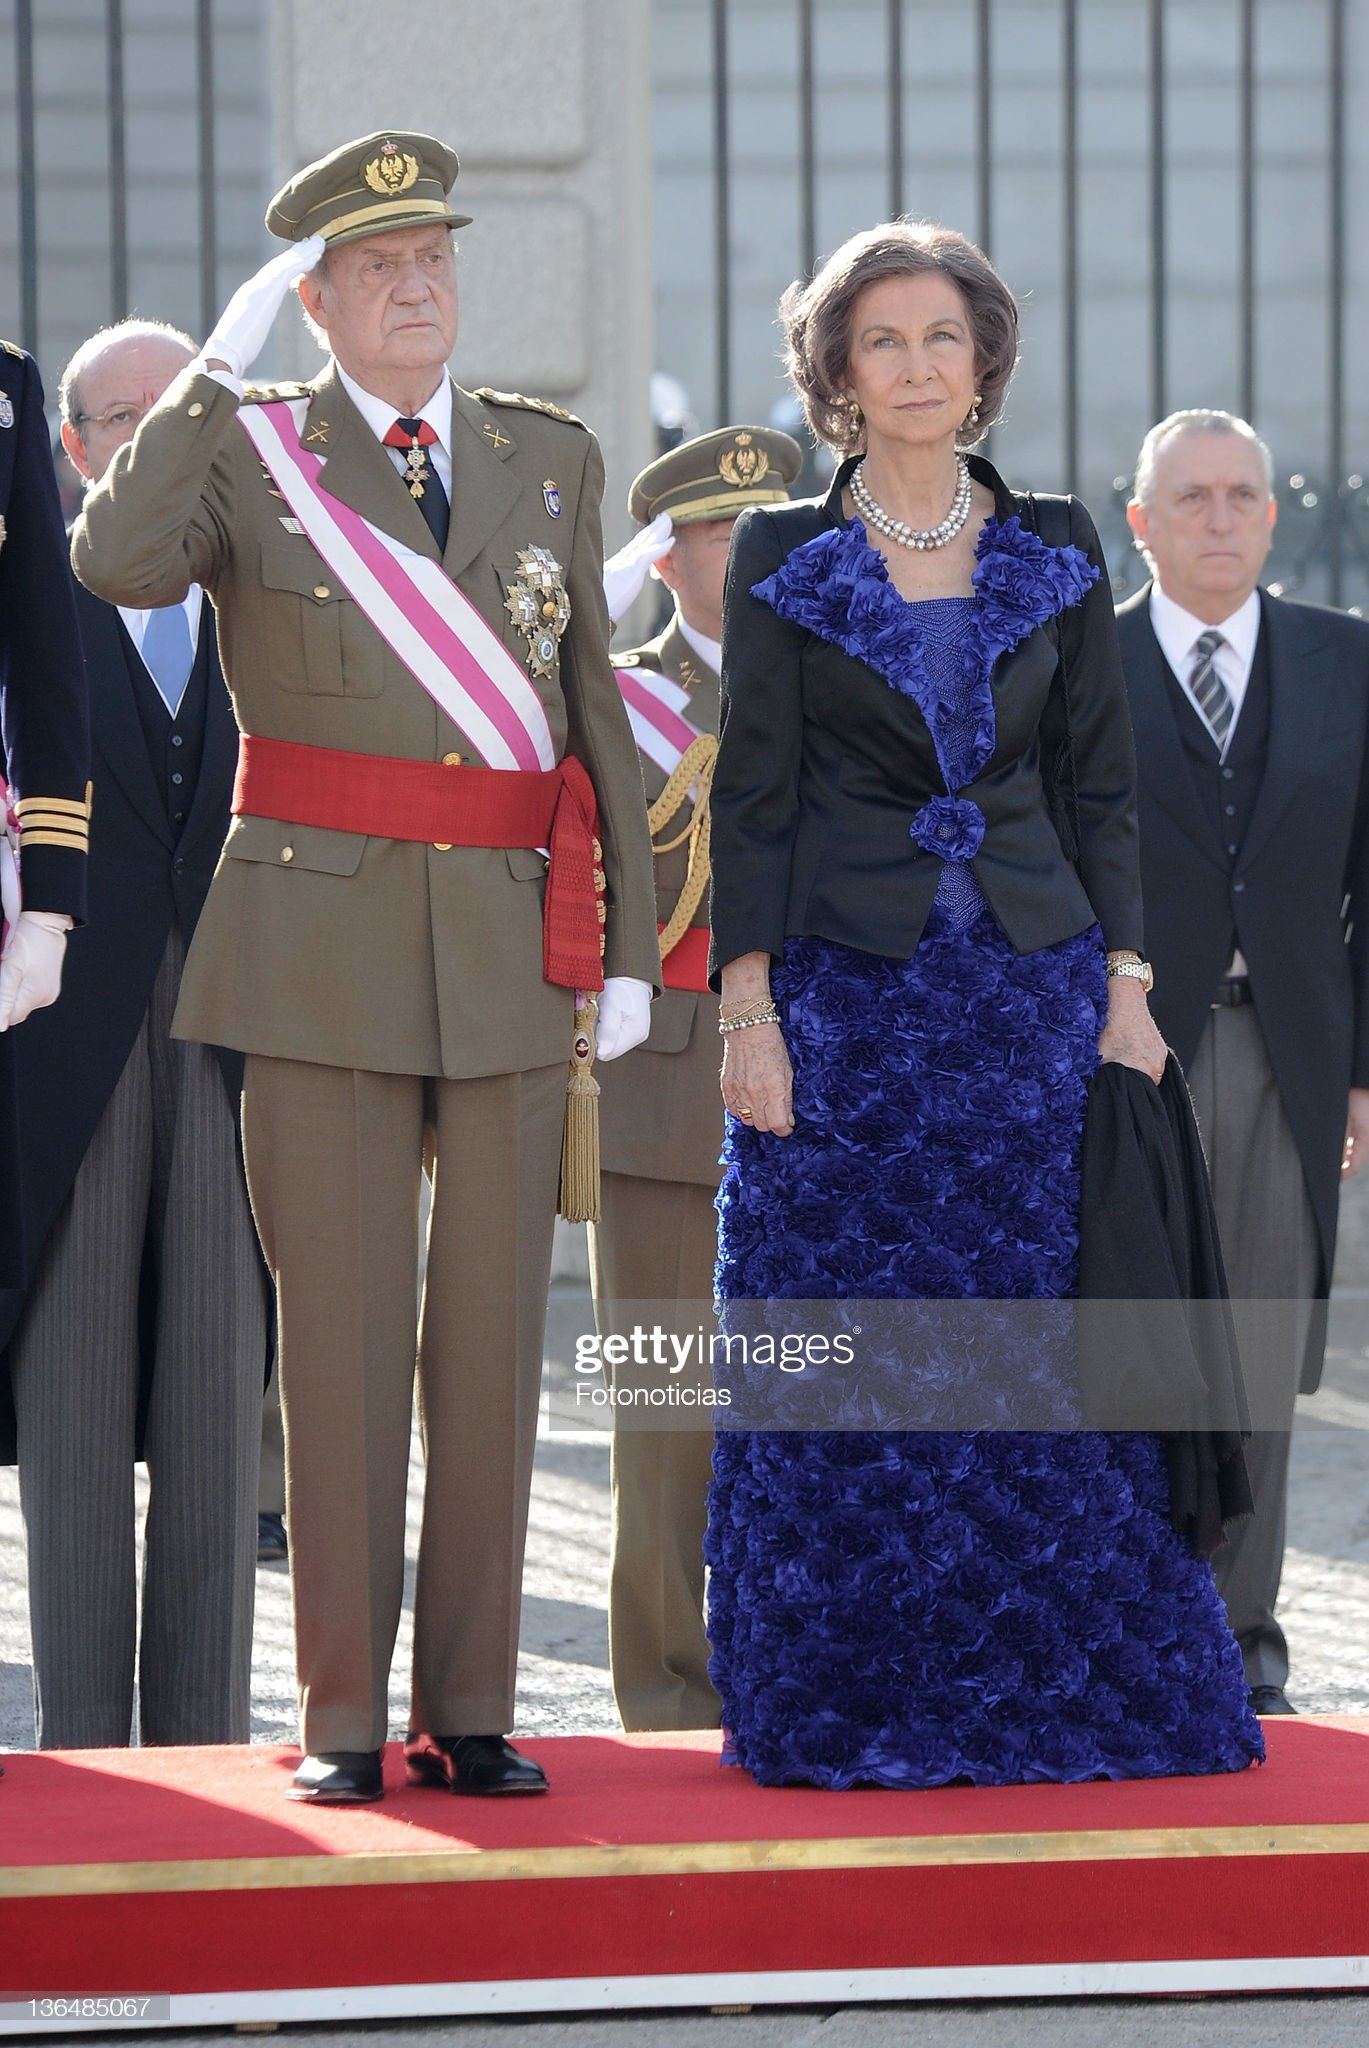 Spanish Royals Celebrate New Year's Military Parade 2012 : News Photo